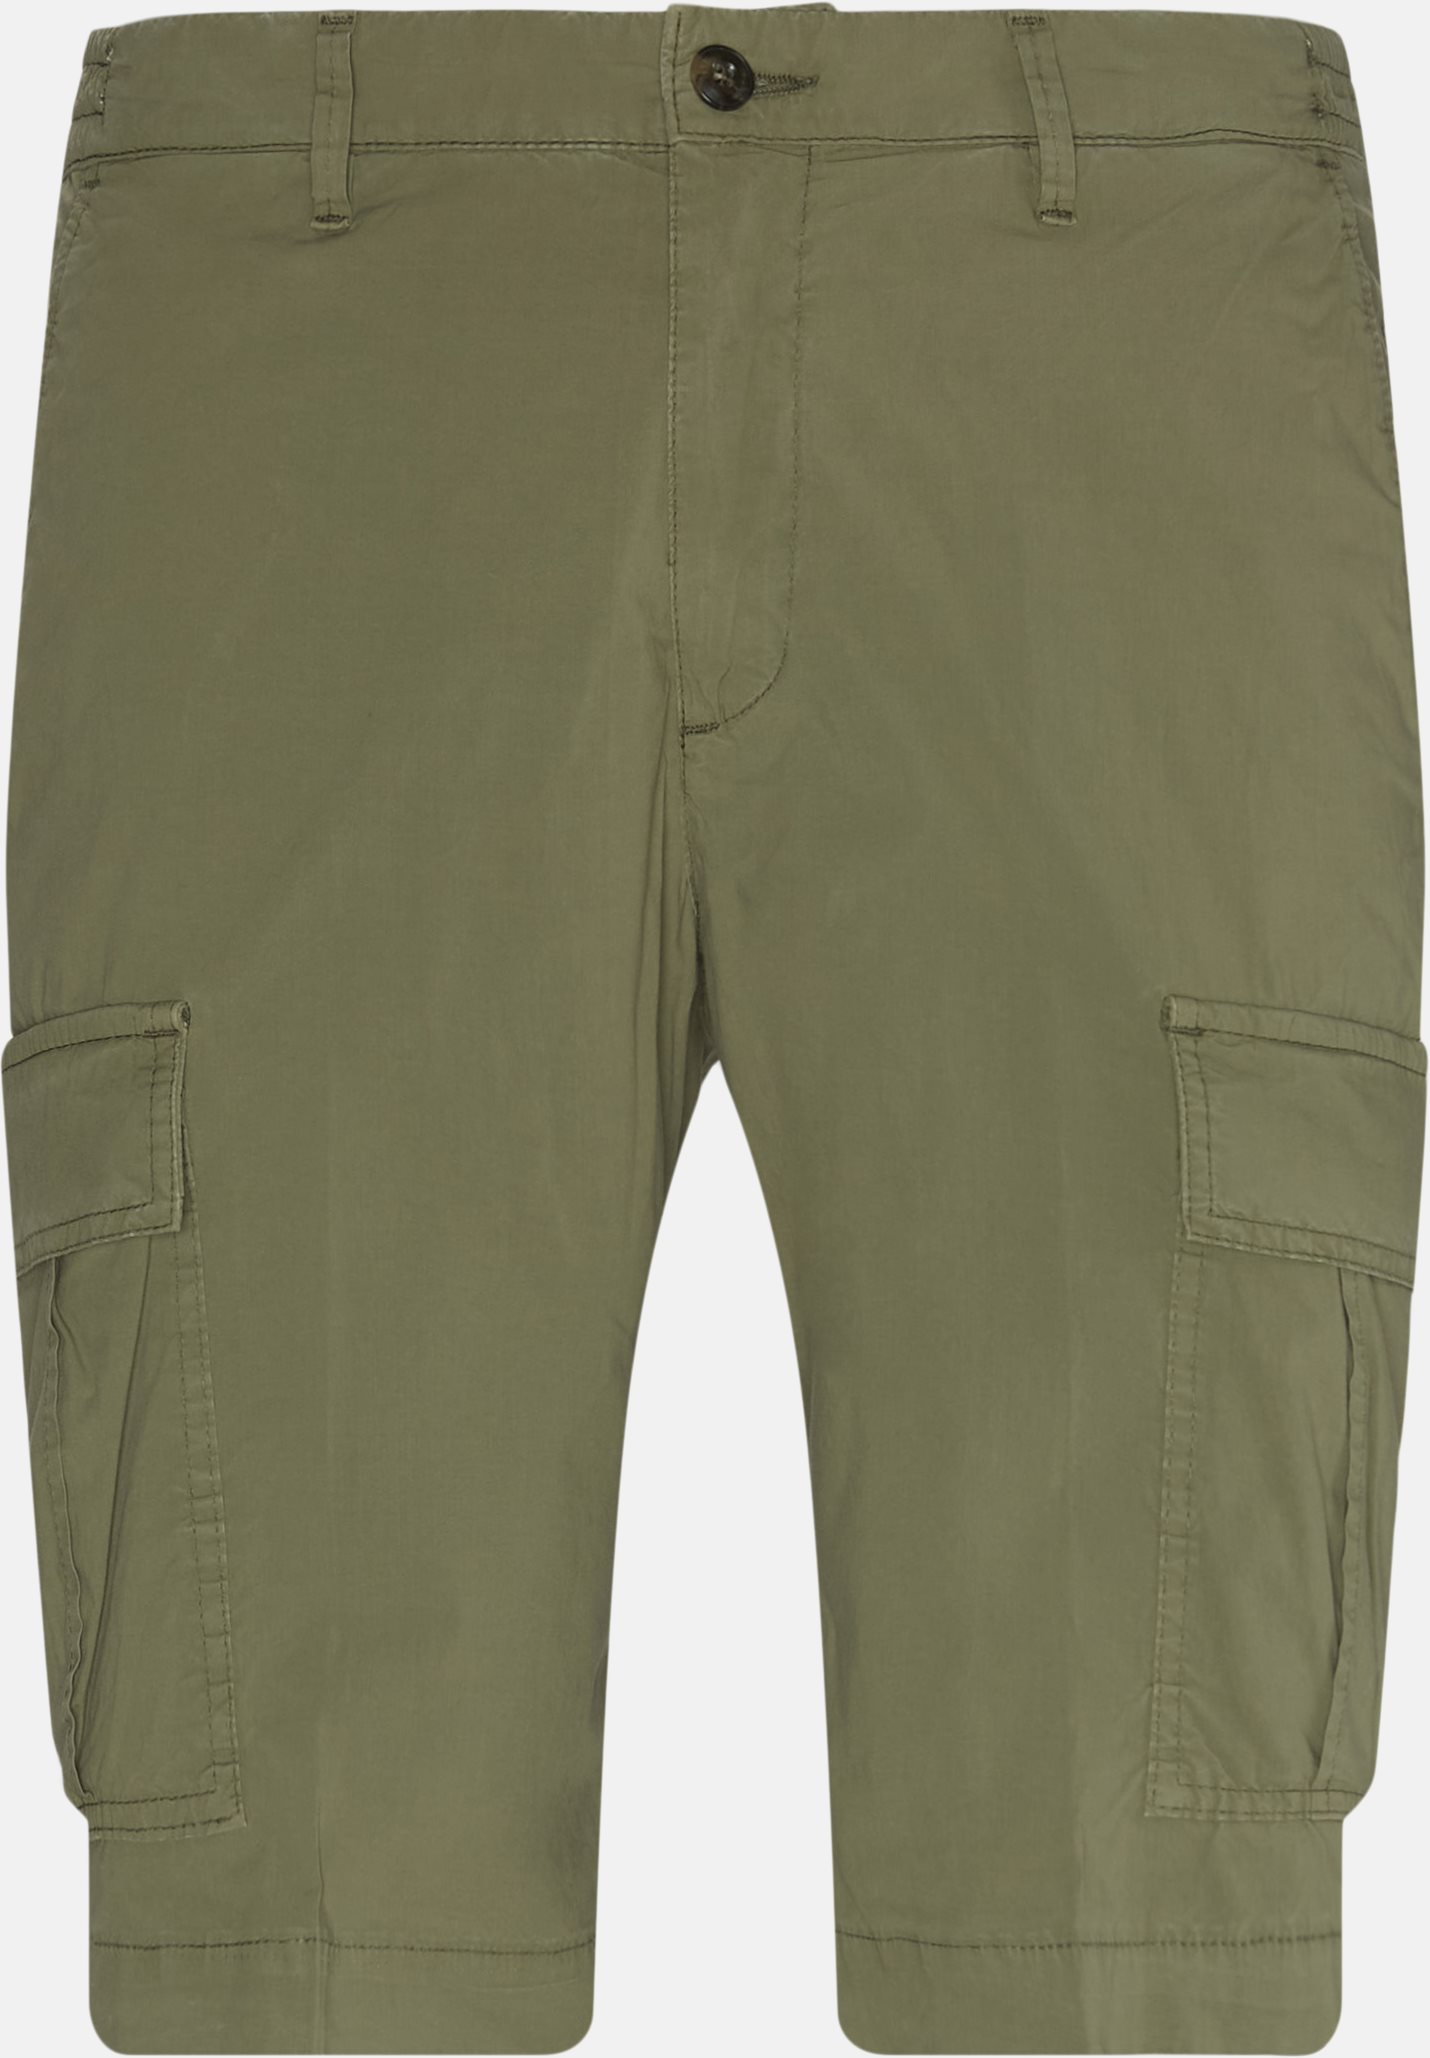 Shorts - Regular - Army